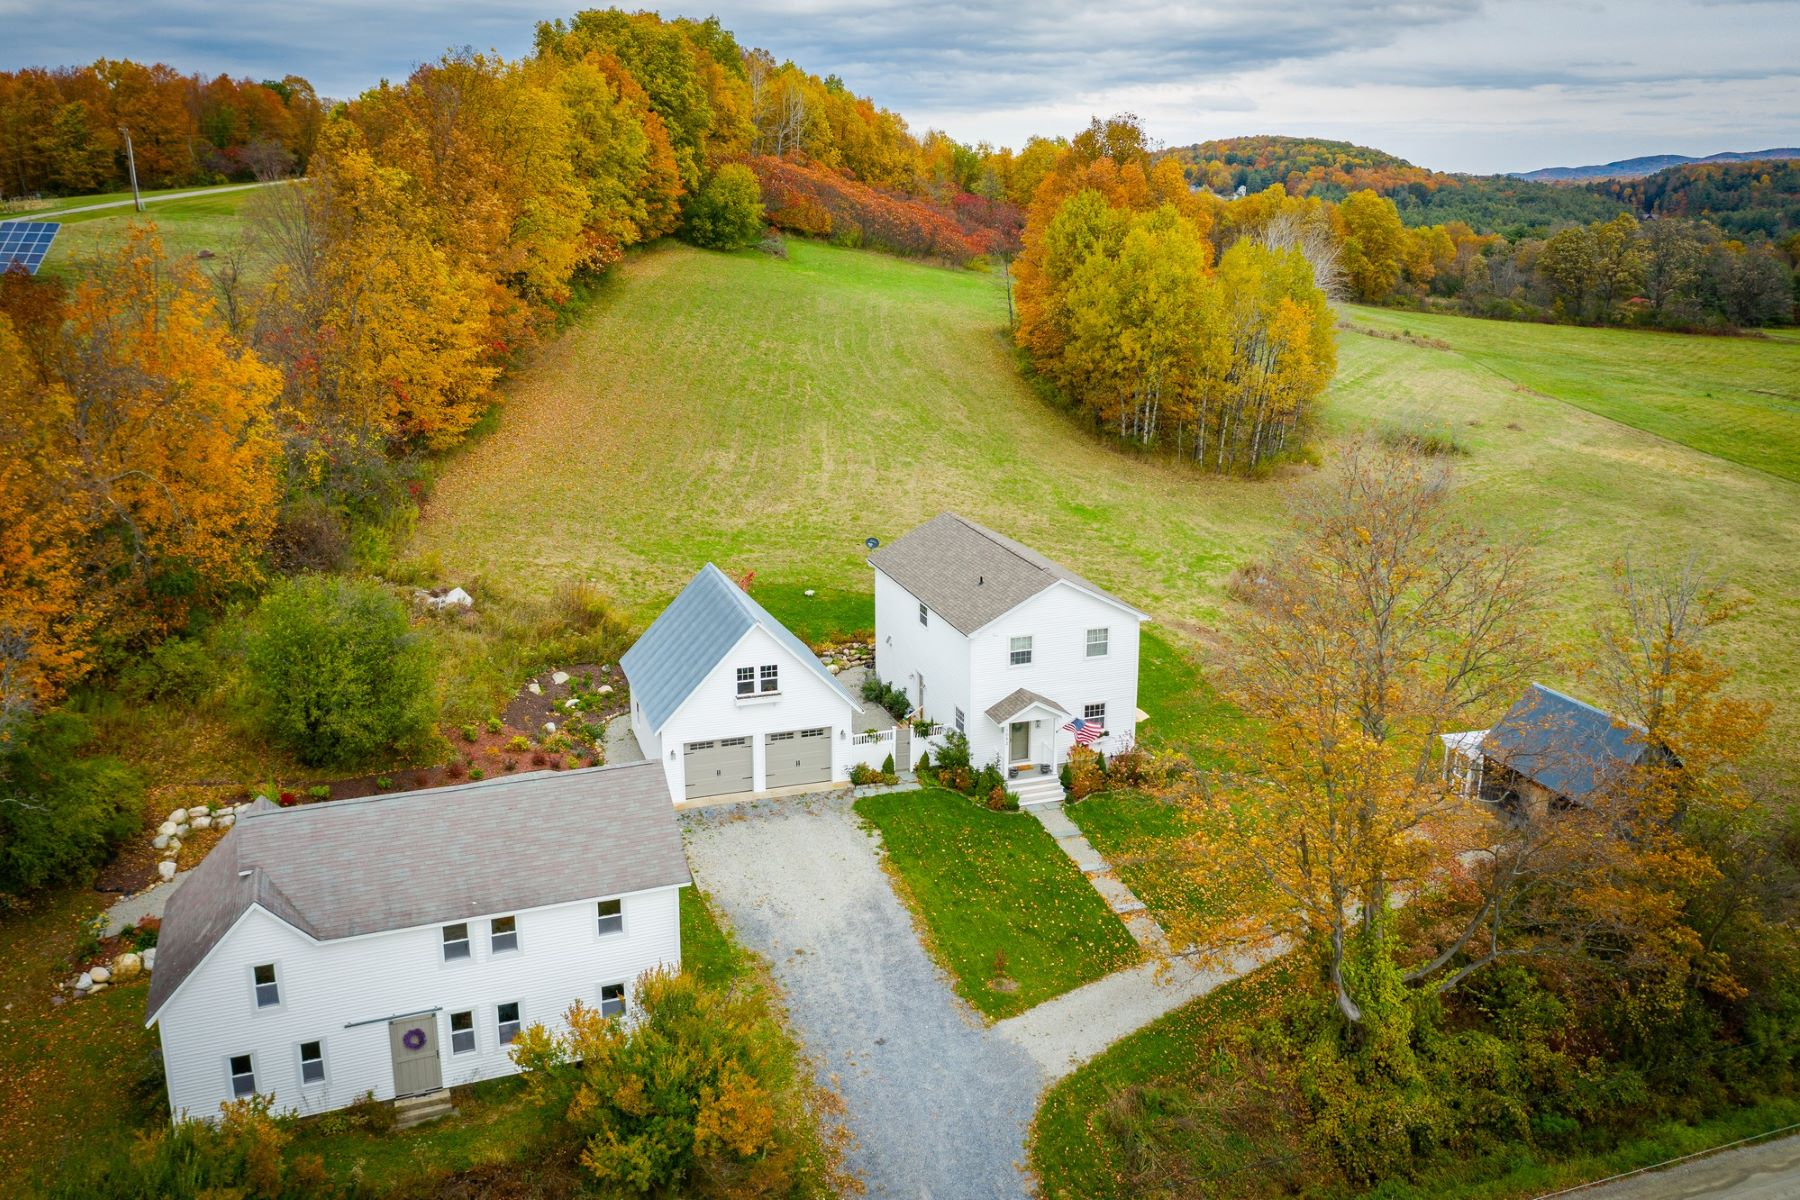 Single Family Homes for Sale at Vermont Farmhouse 1092 Roscoe Road Charlotte, Vermont 05445 United States